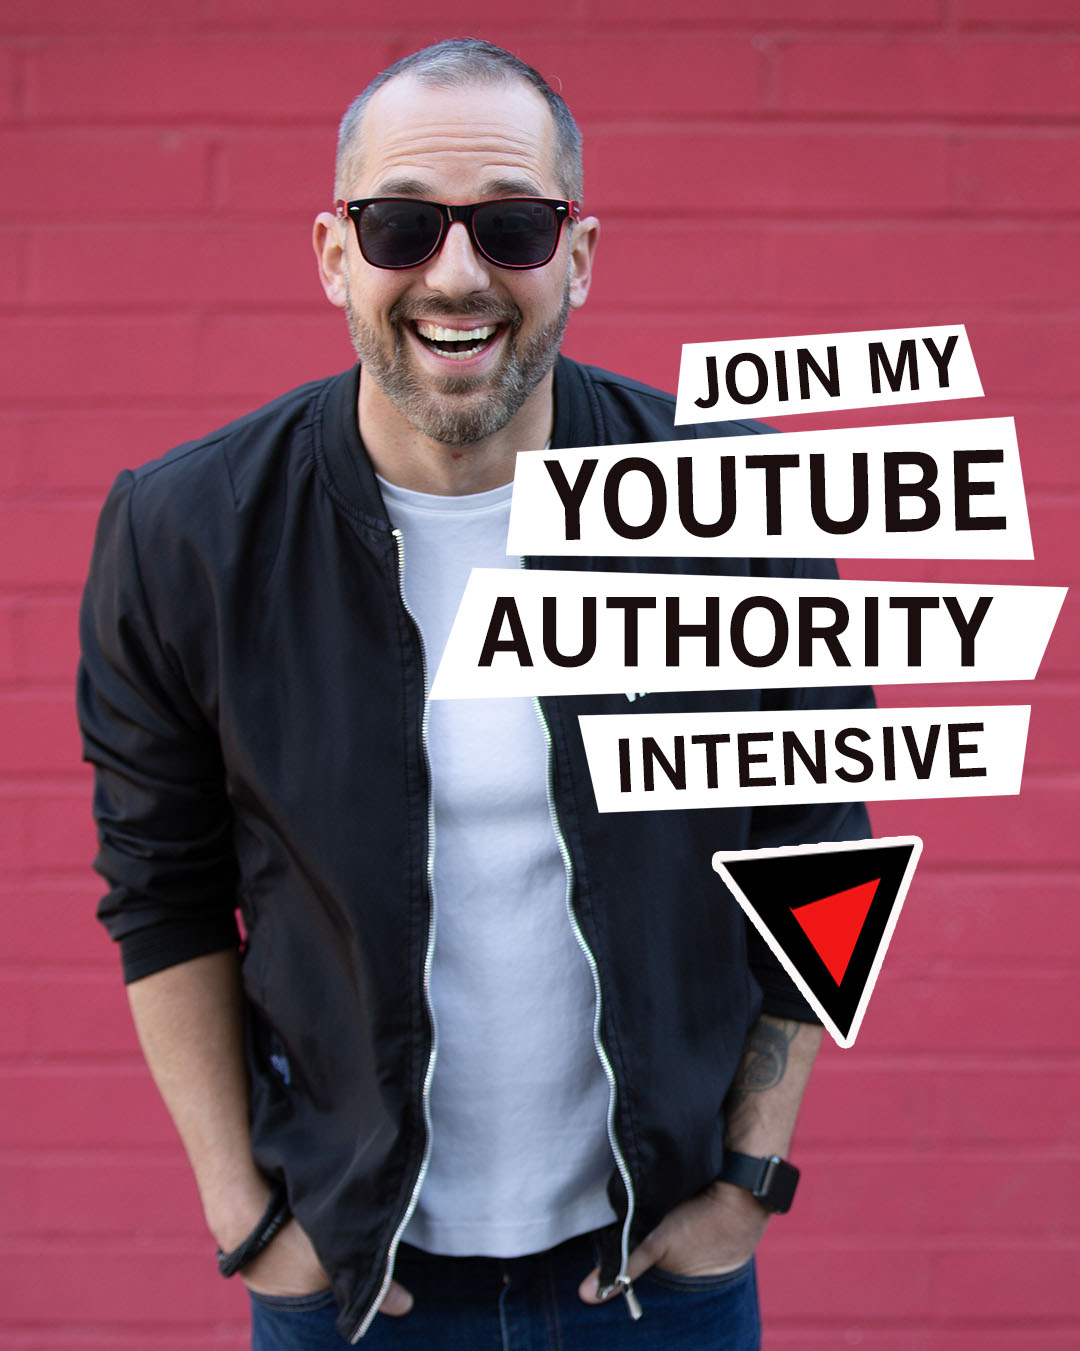 YouTube Authority Intensive 2020 graphic 4-5